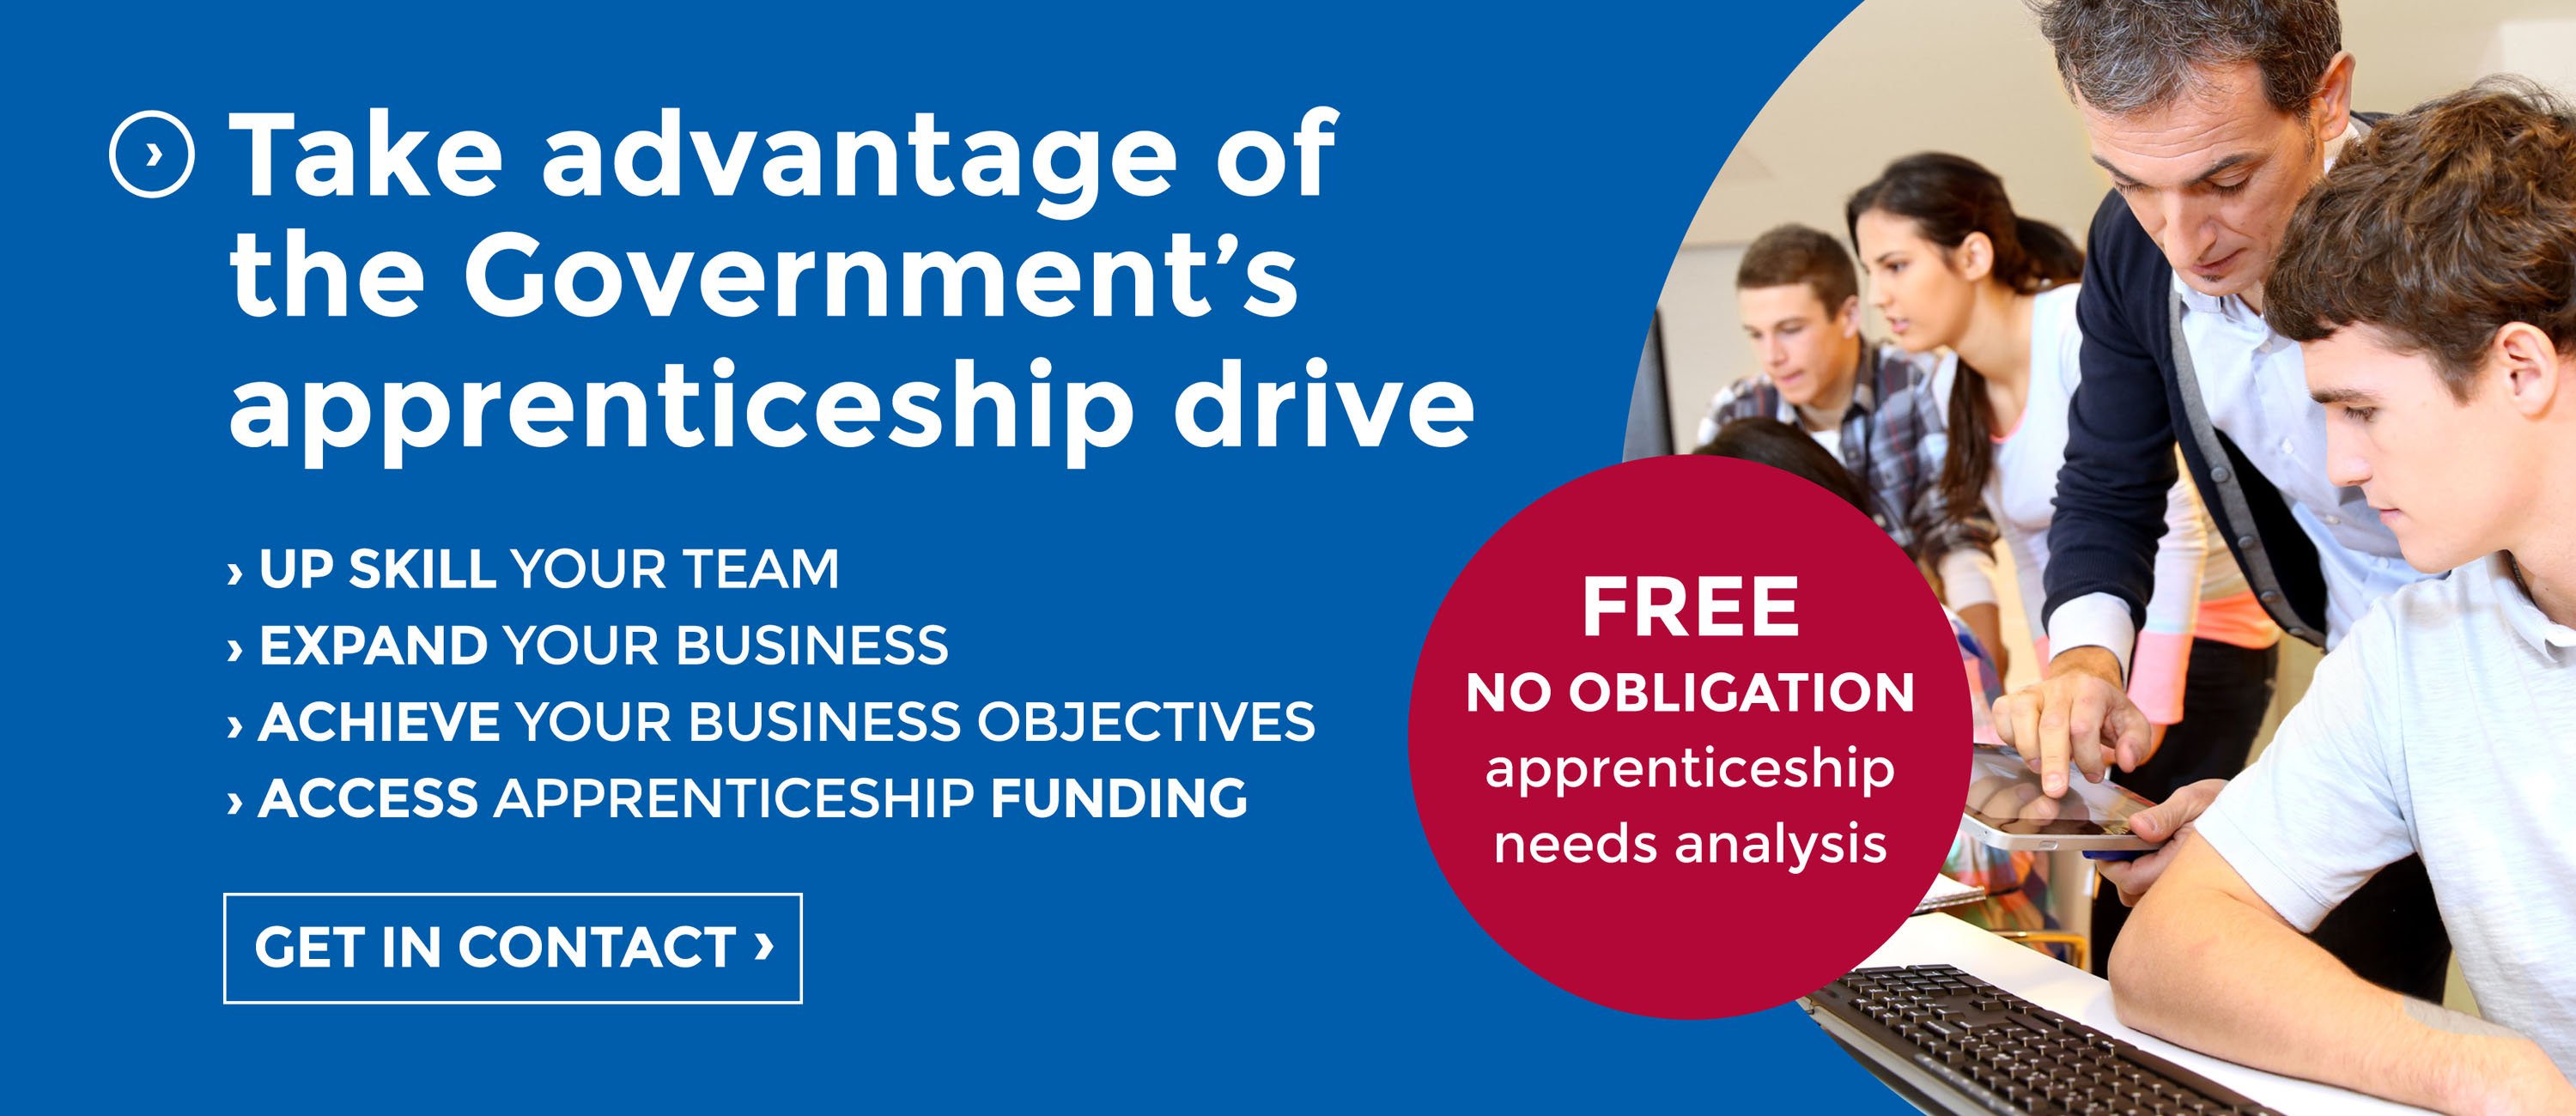 Take advantage of the governments apprenticeship drive with SCL